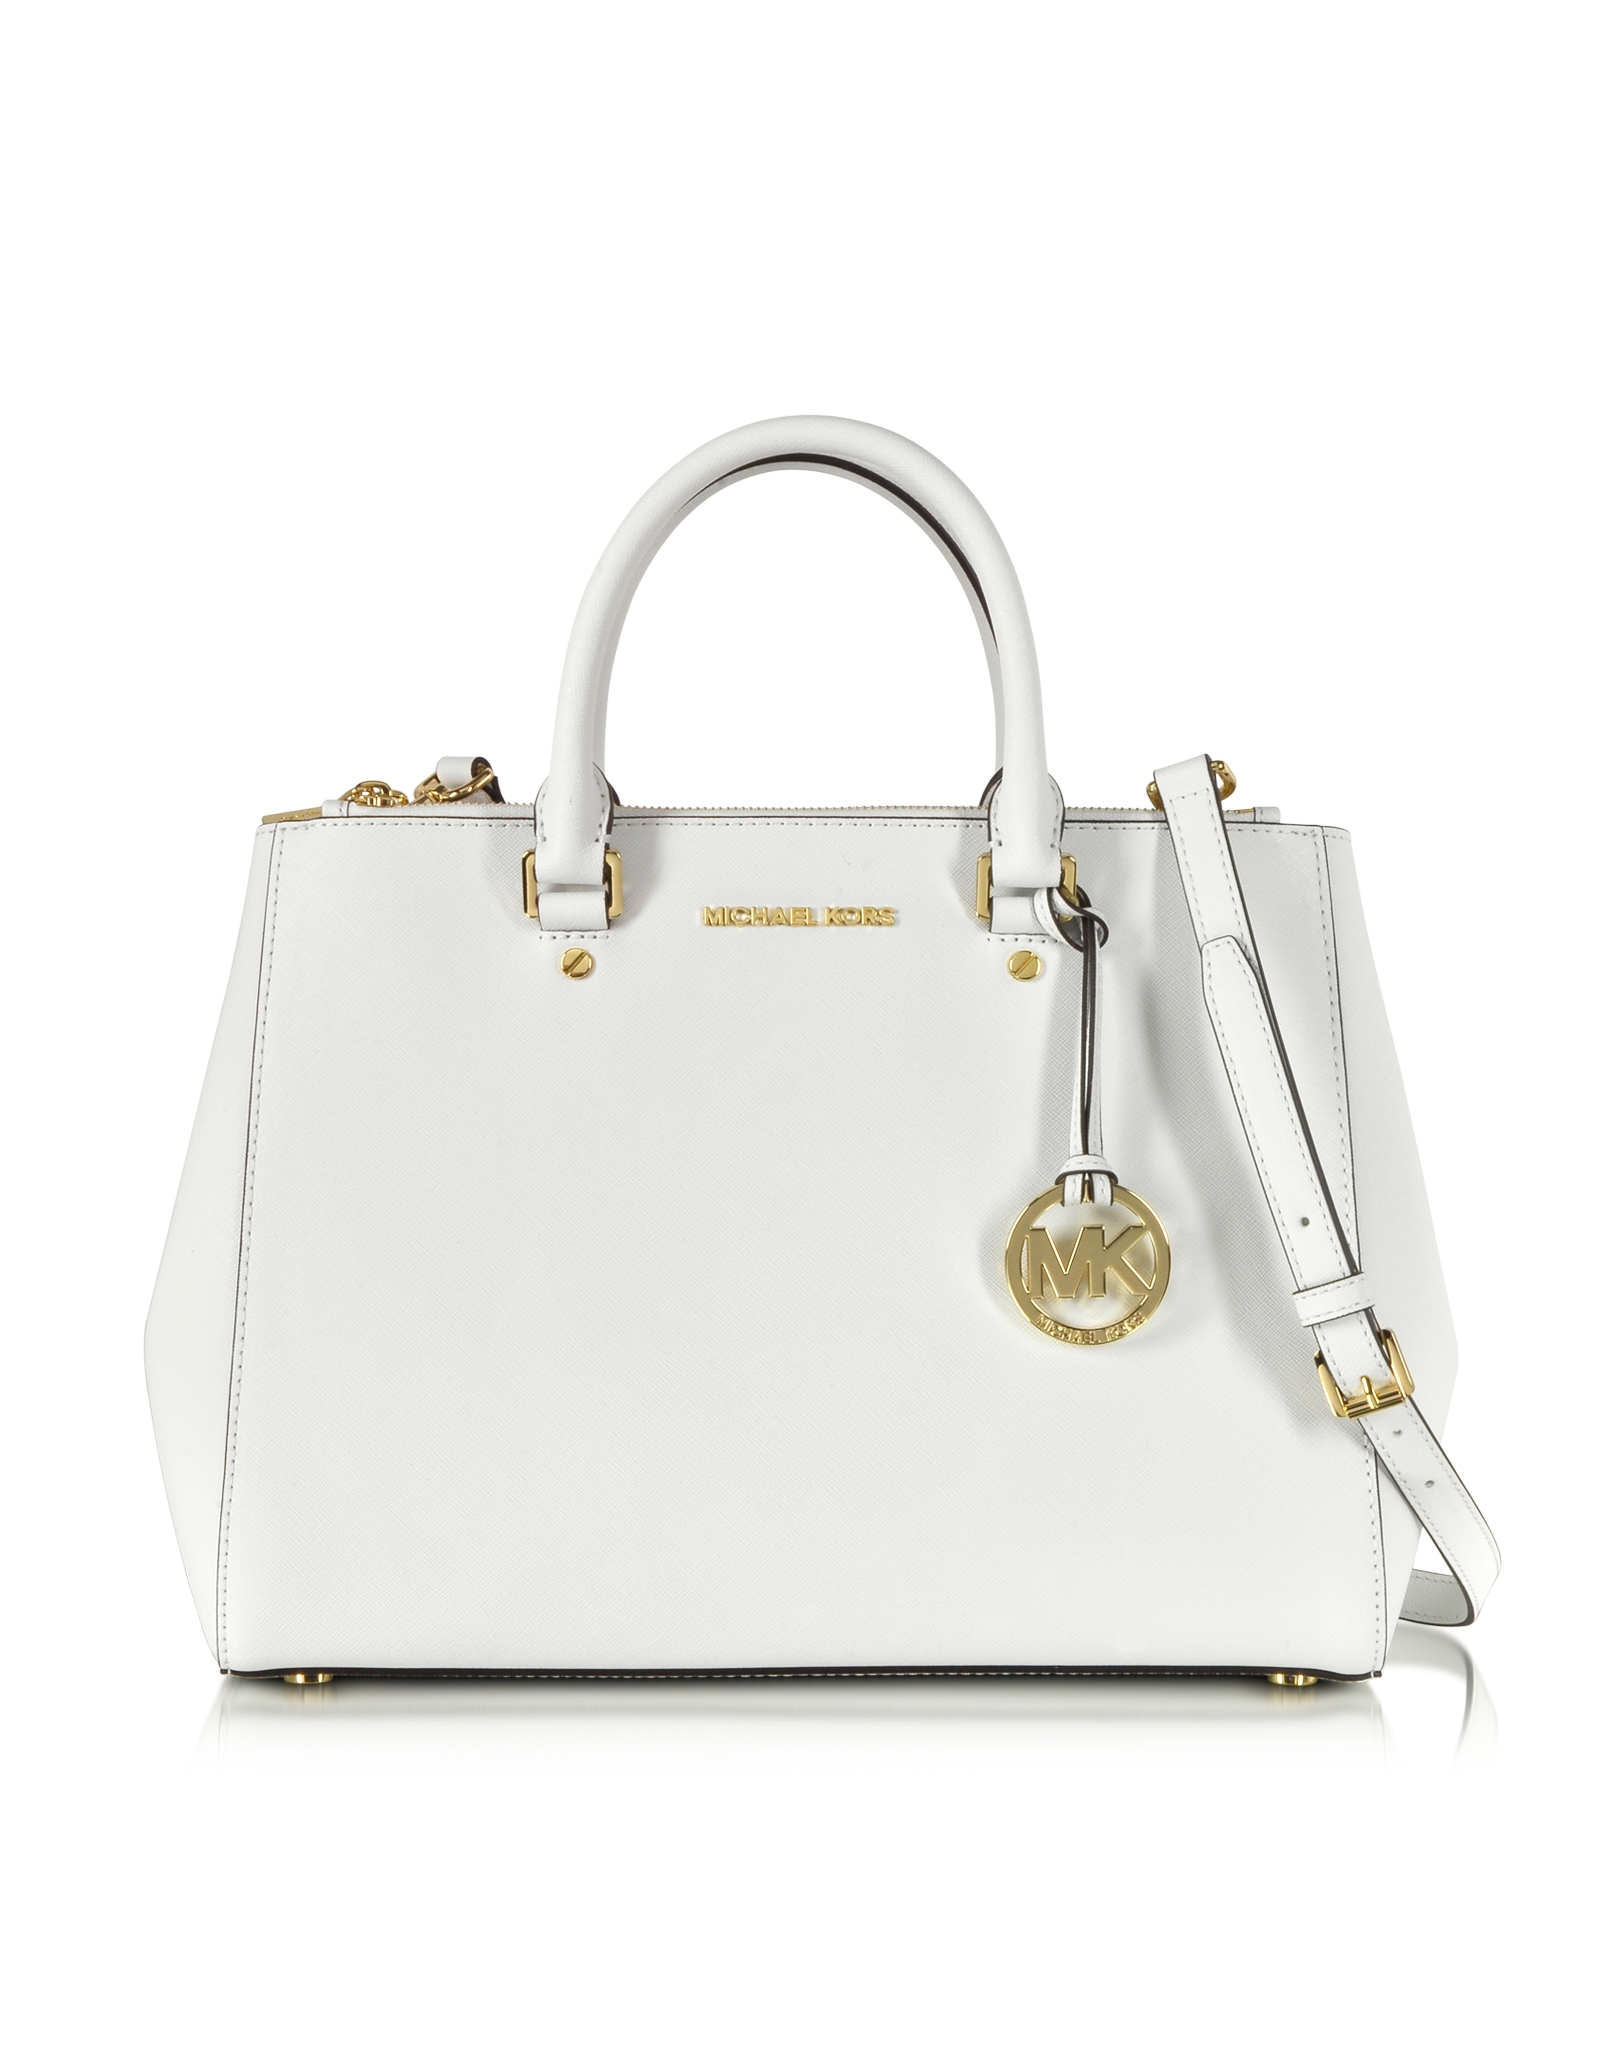 07644aeae62c Lyst - Michael Kors Sutton Saffiano Leather Large Satchel in White